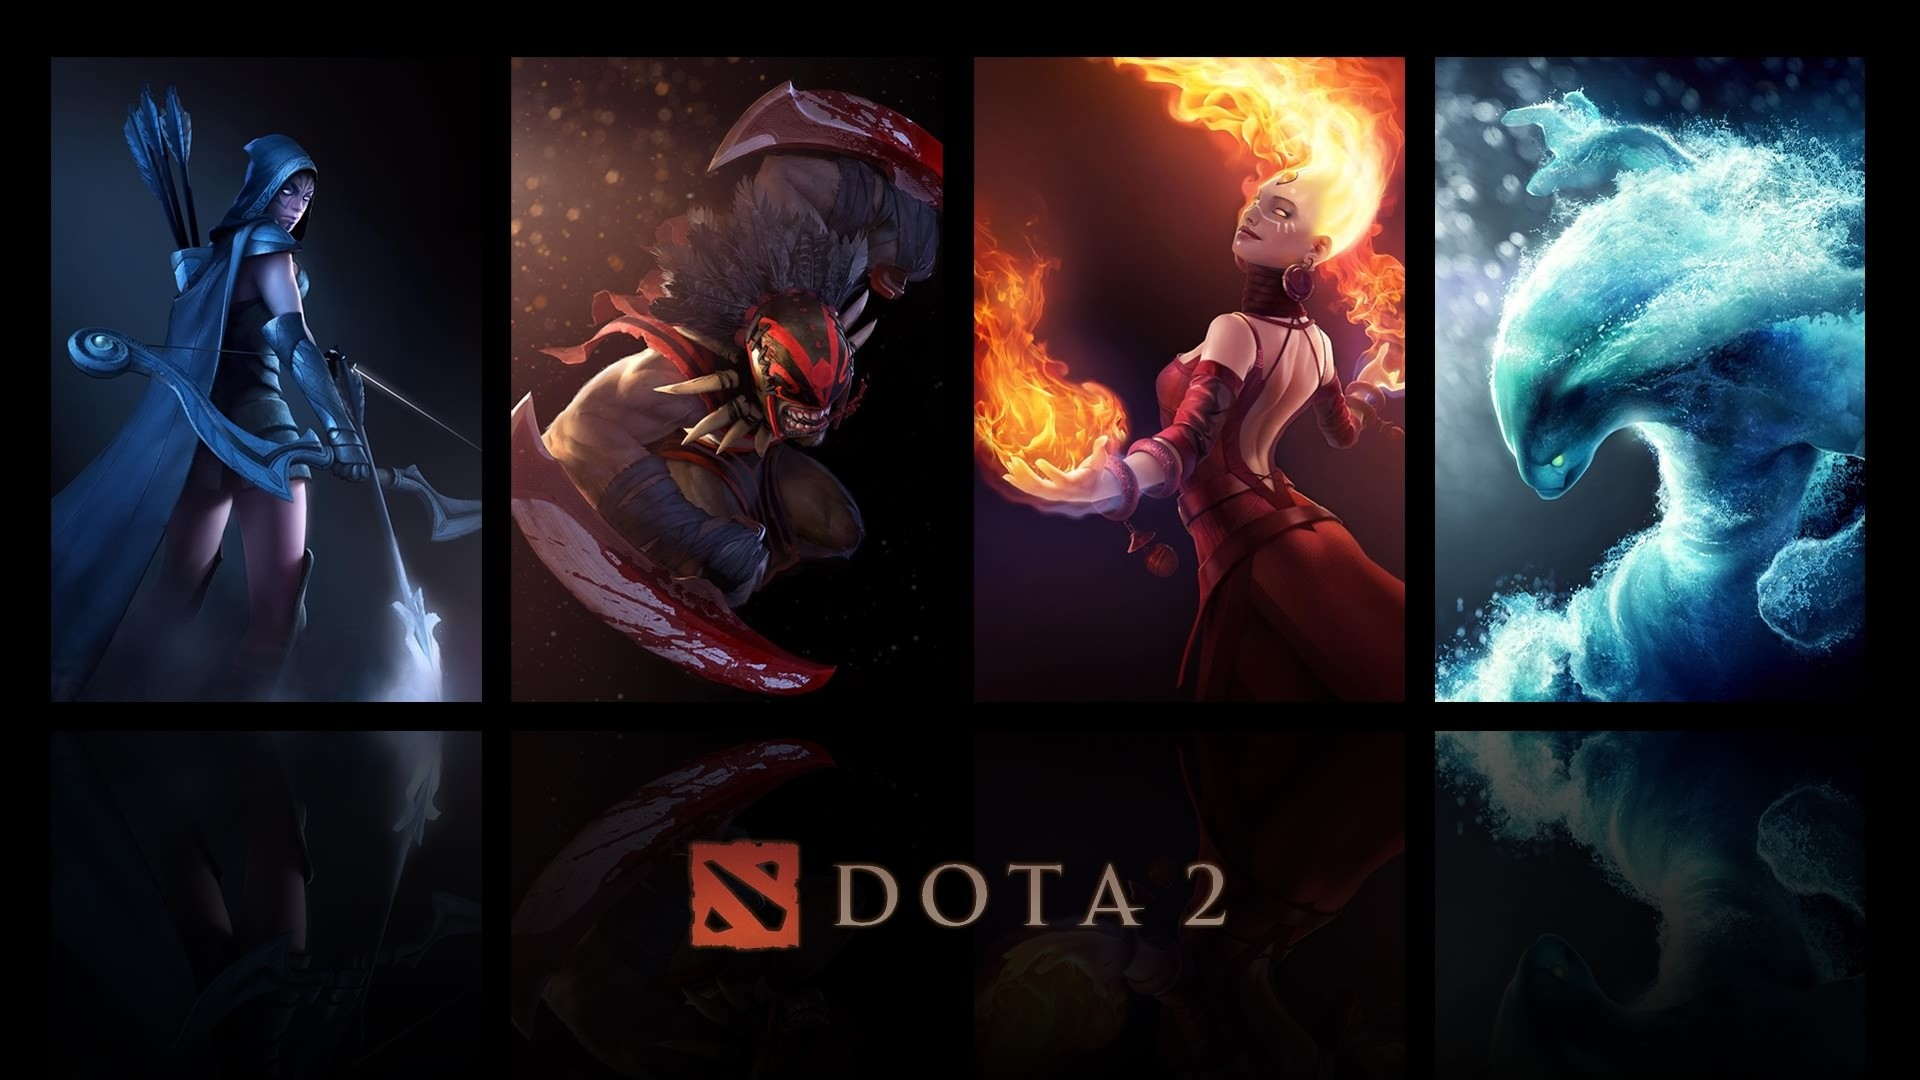 dota 2 hd wallpaper 1920x1080 78 images